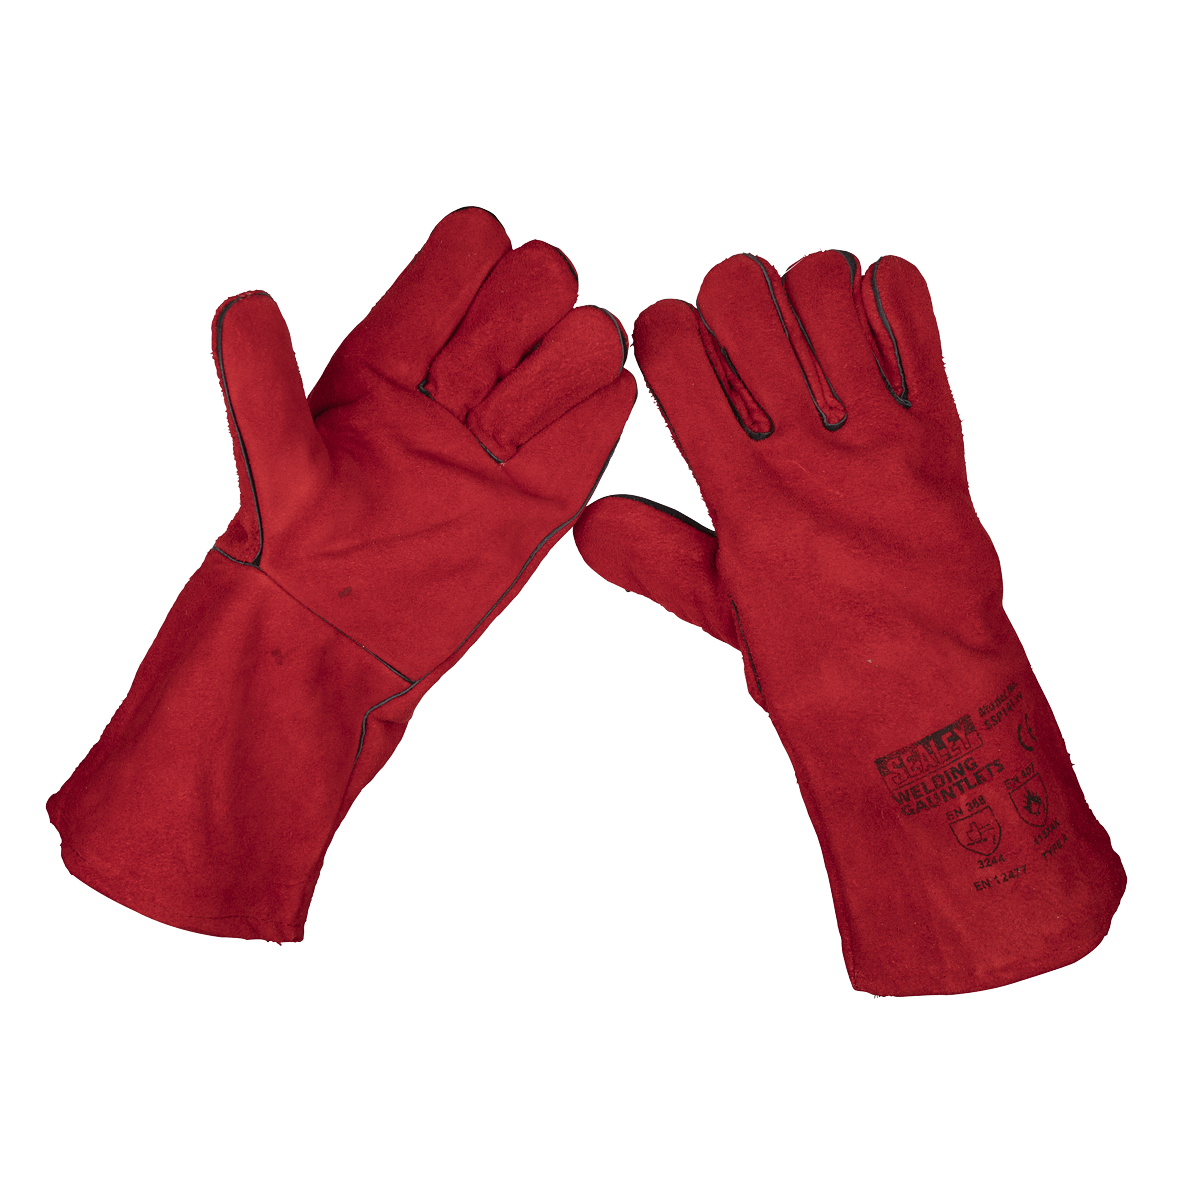 Sealey Leather Welding Gauntlets Lined Pair SSP141   Gauntlets offer superior protection from spatter and heat.   toolforce.ie